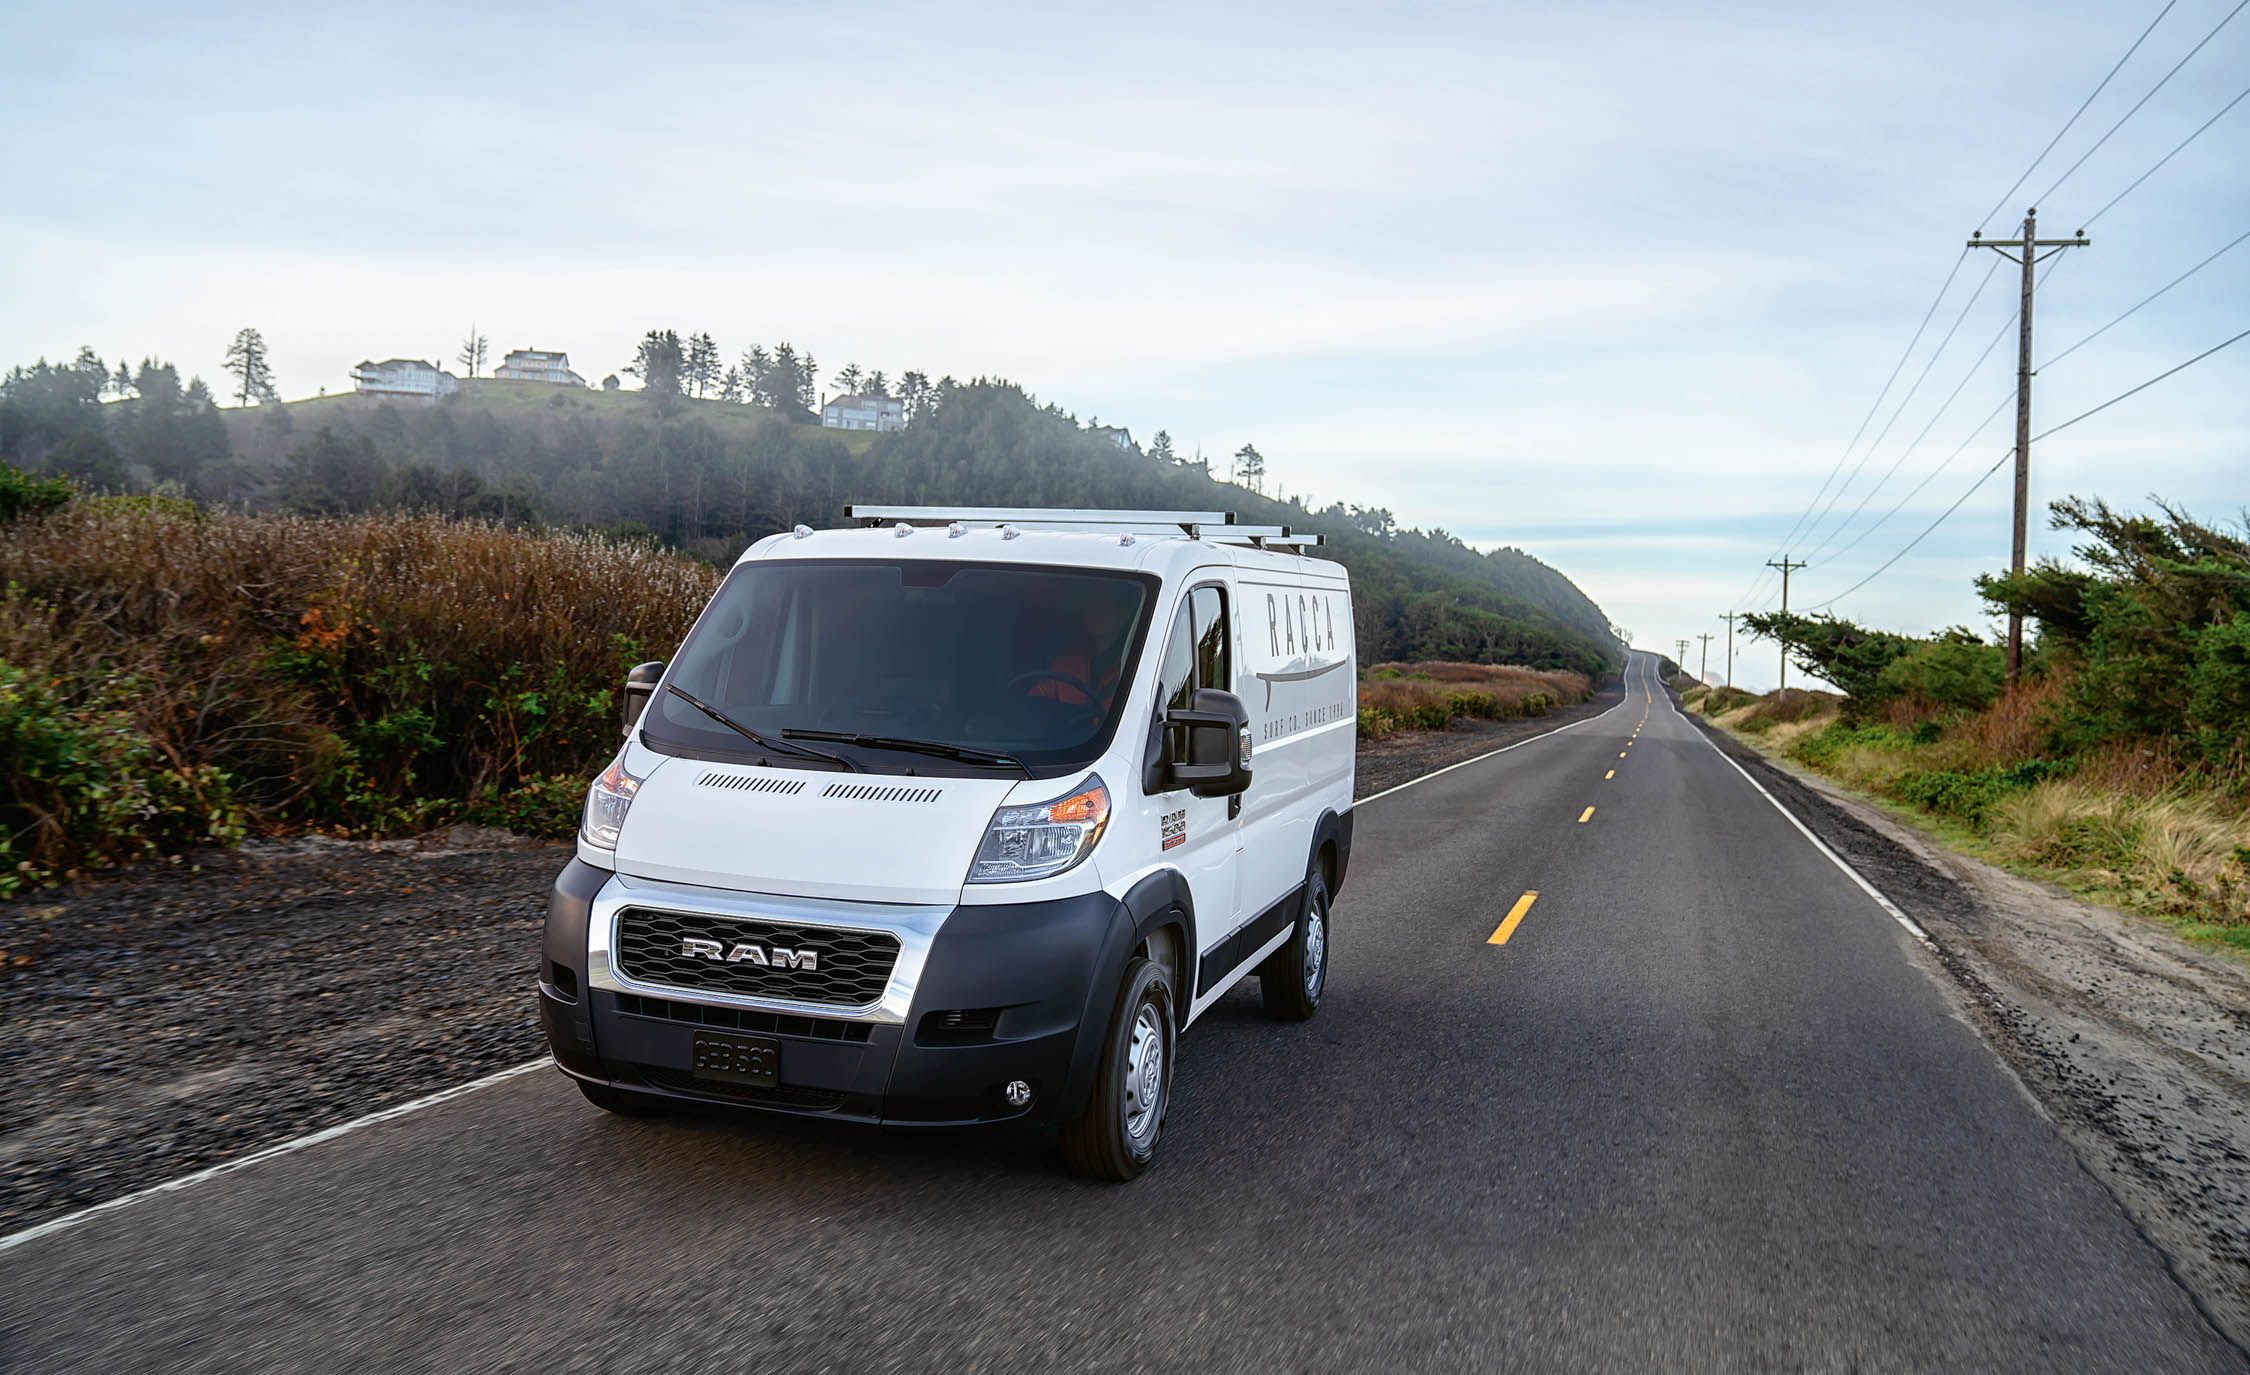 2019 Ram Promaster And Promaster City Updated News Car